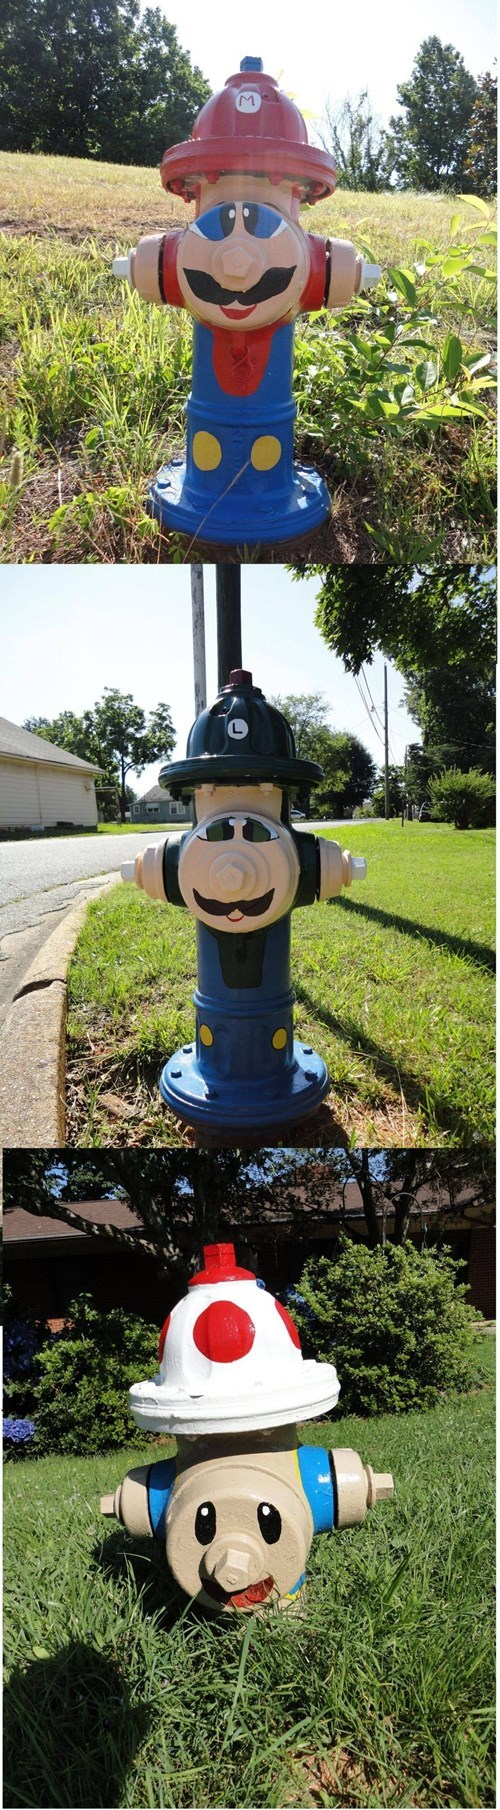 firefighters fire hydrant mario - 8349935360